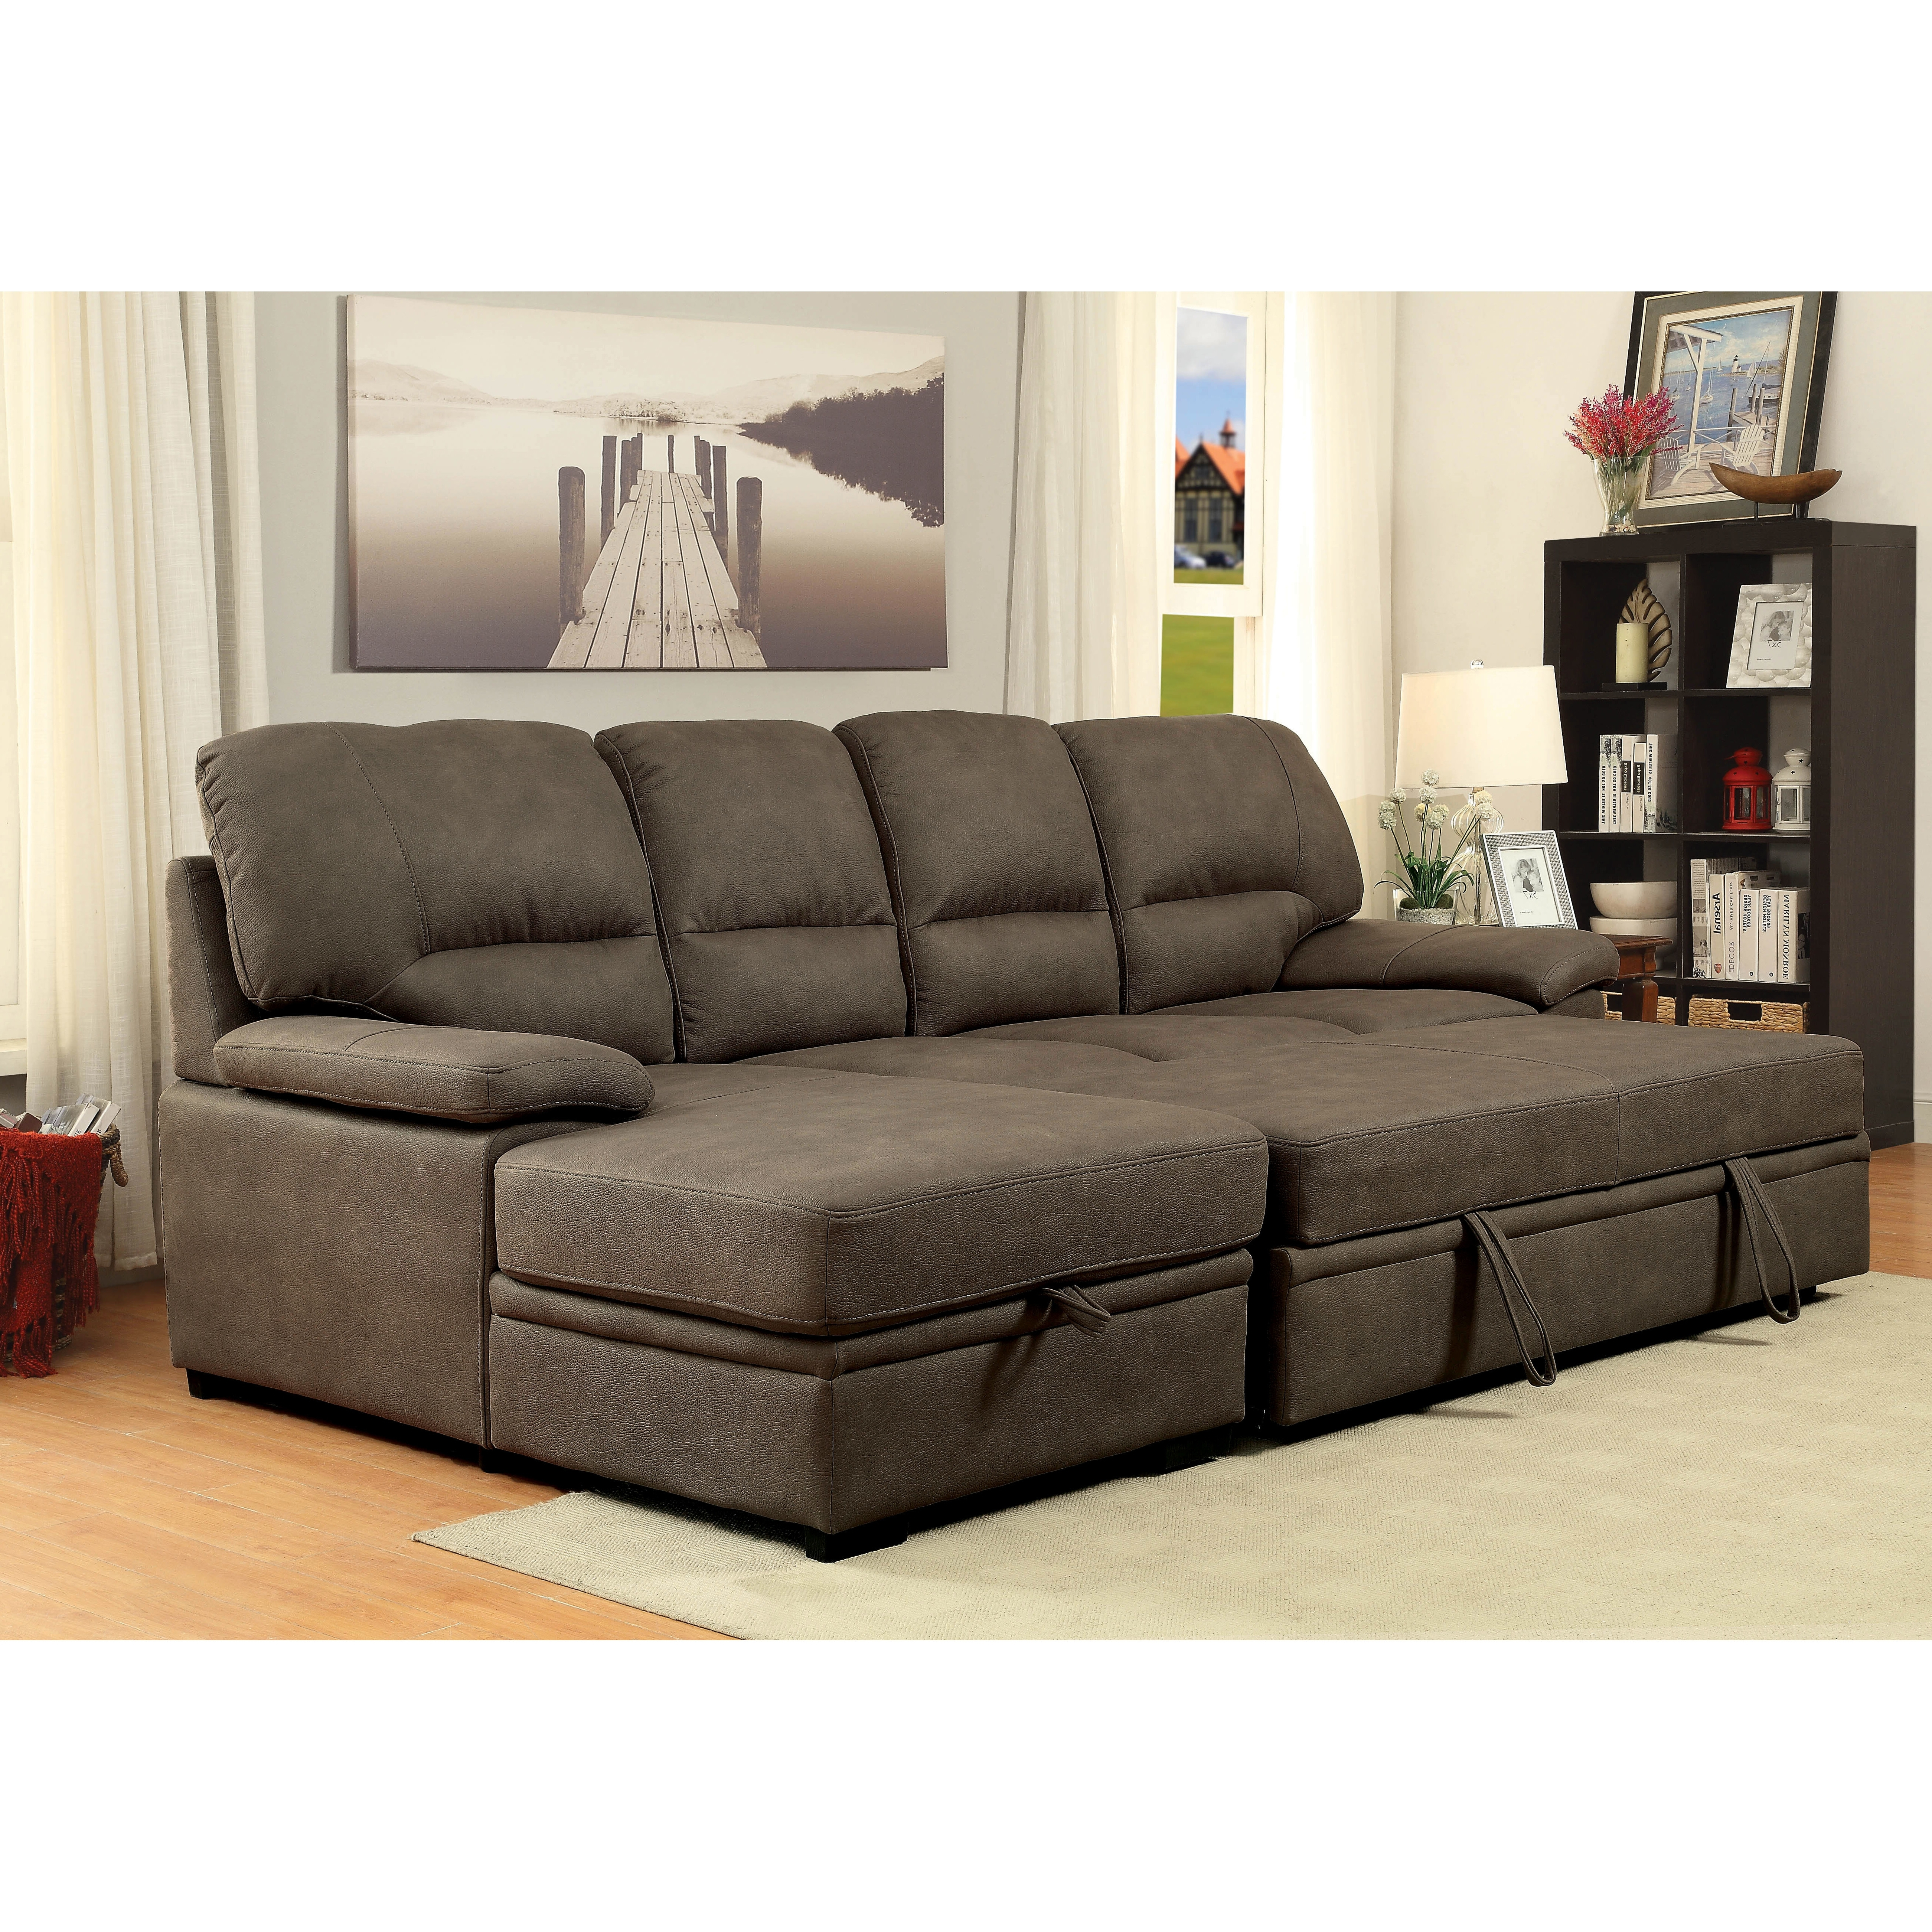 Sleeper Sectional Sofas Pertaining To Famous Attractive Sofa Sleeper Sectionals Coolest Home Design Ideas With (View 13 of 20)